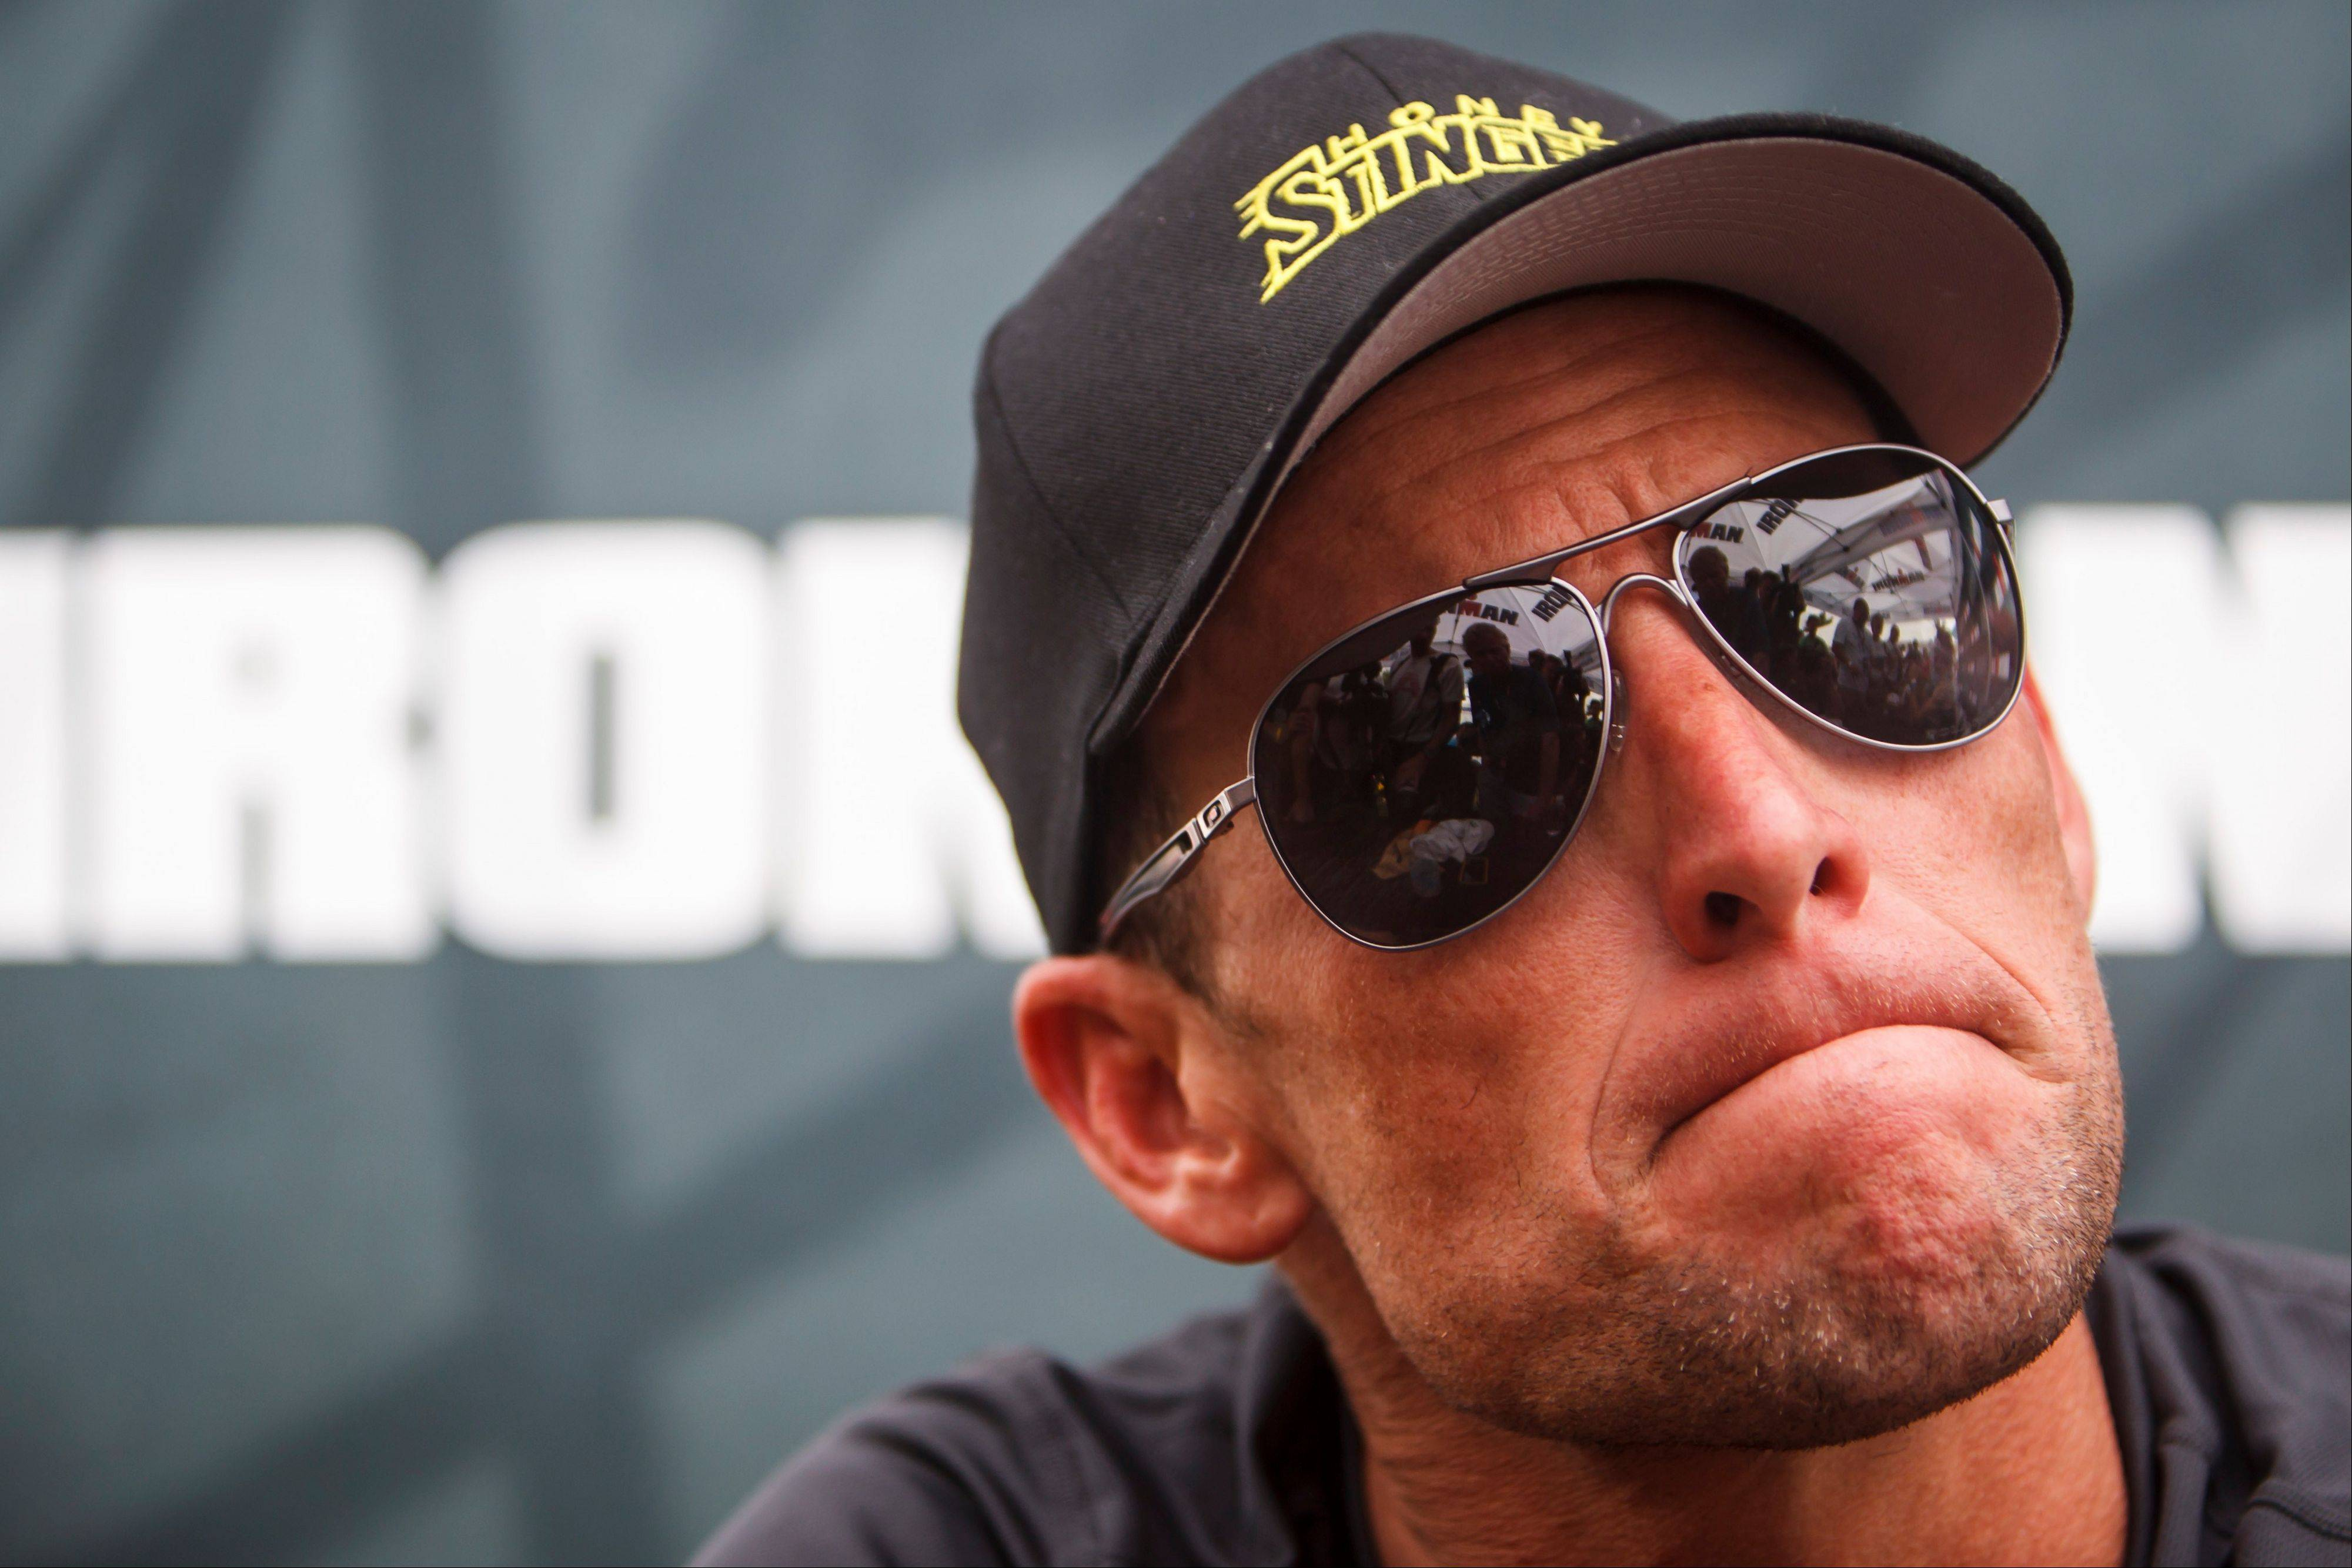 Armstrong facing loss of 7 Tour de France titles